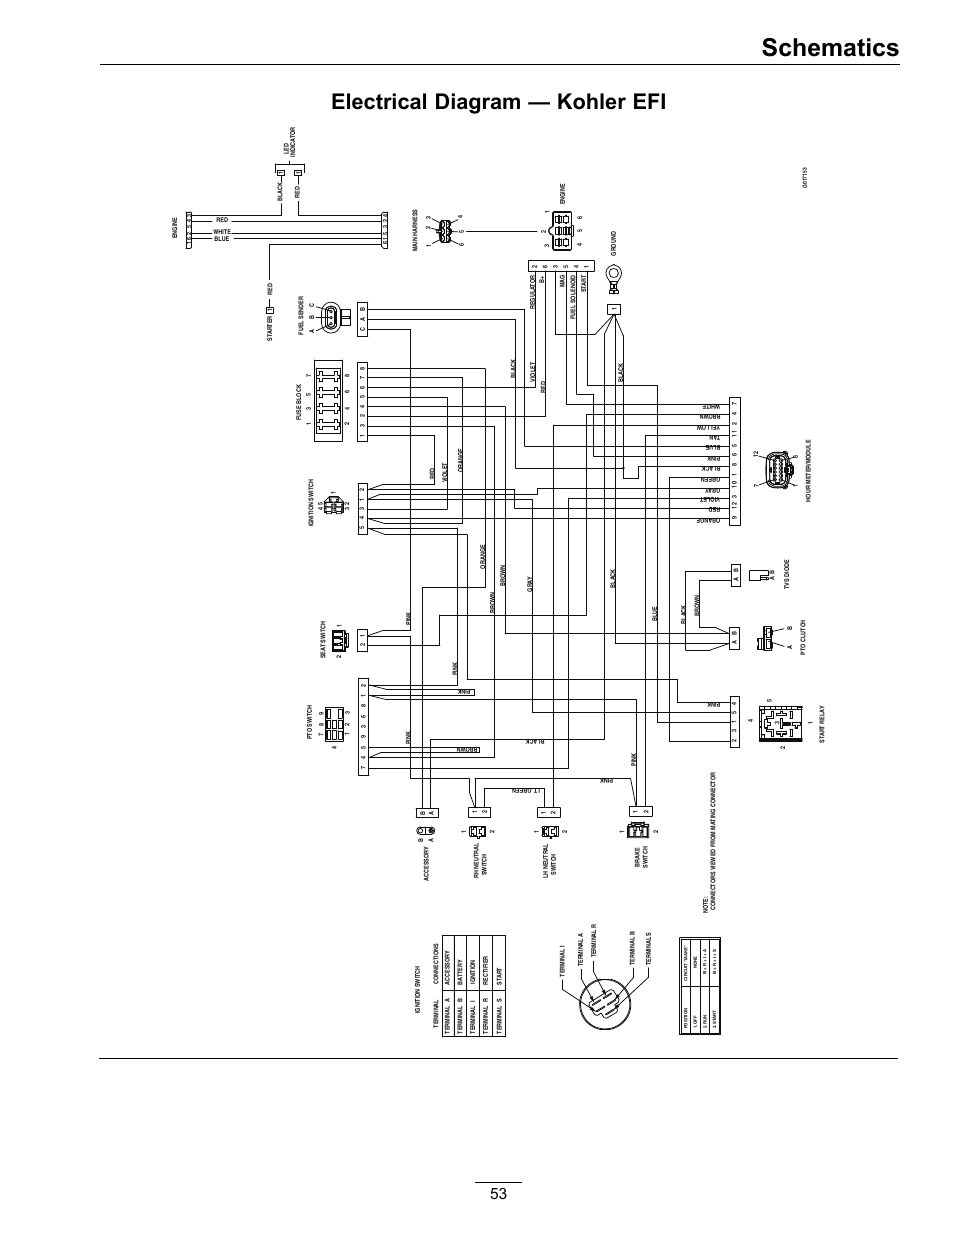 schematics  electrical diagram  u2014 kohler efi